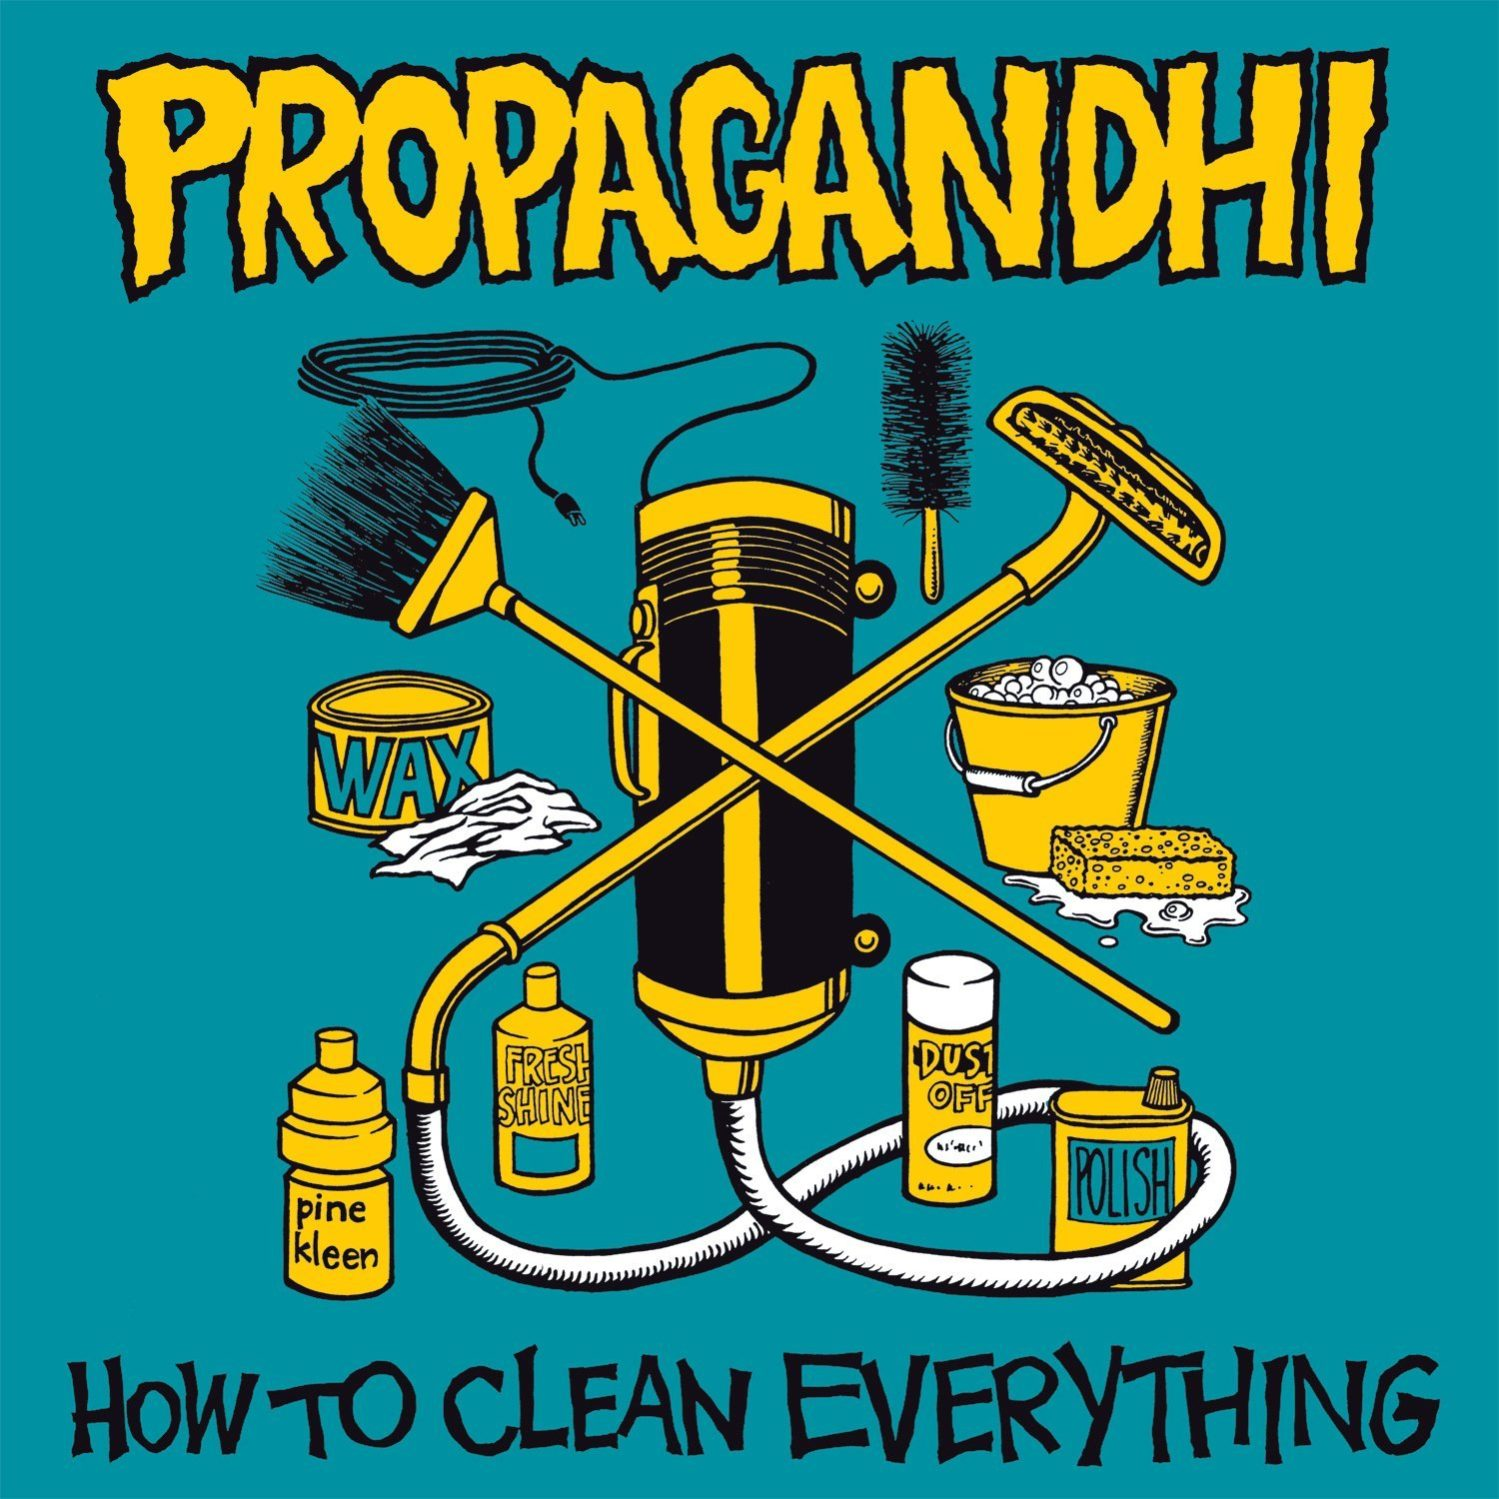 howtocleaneverything